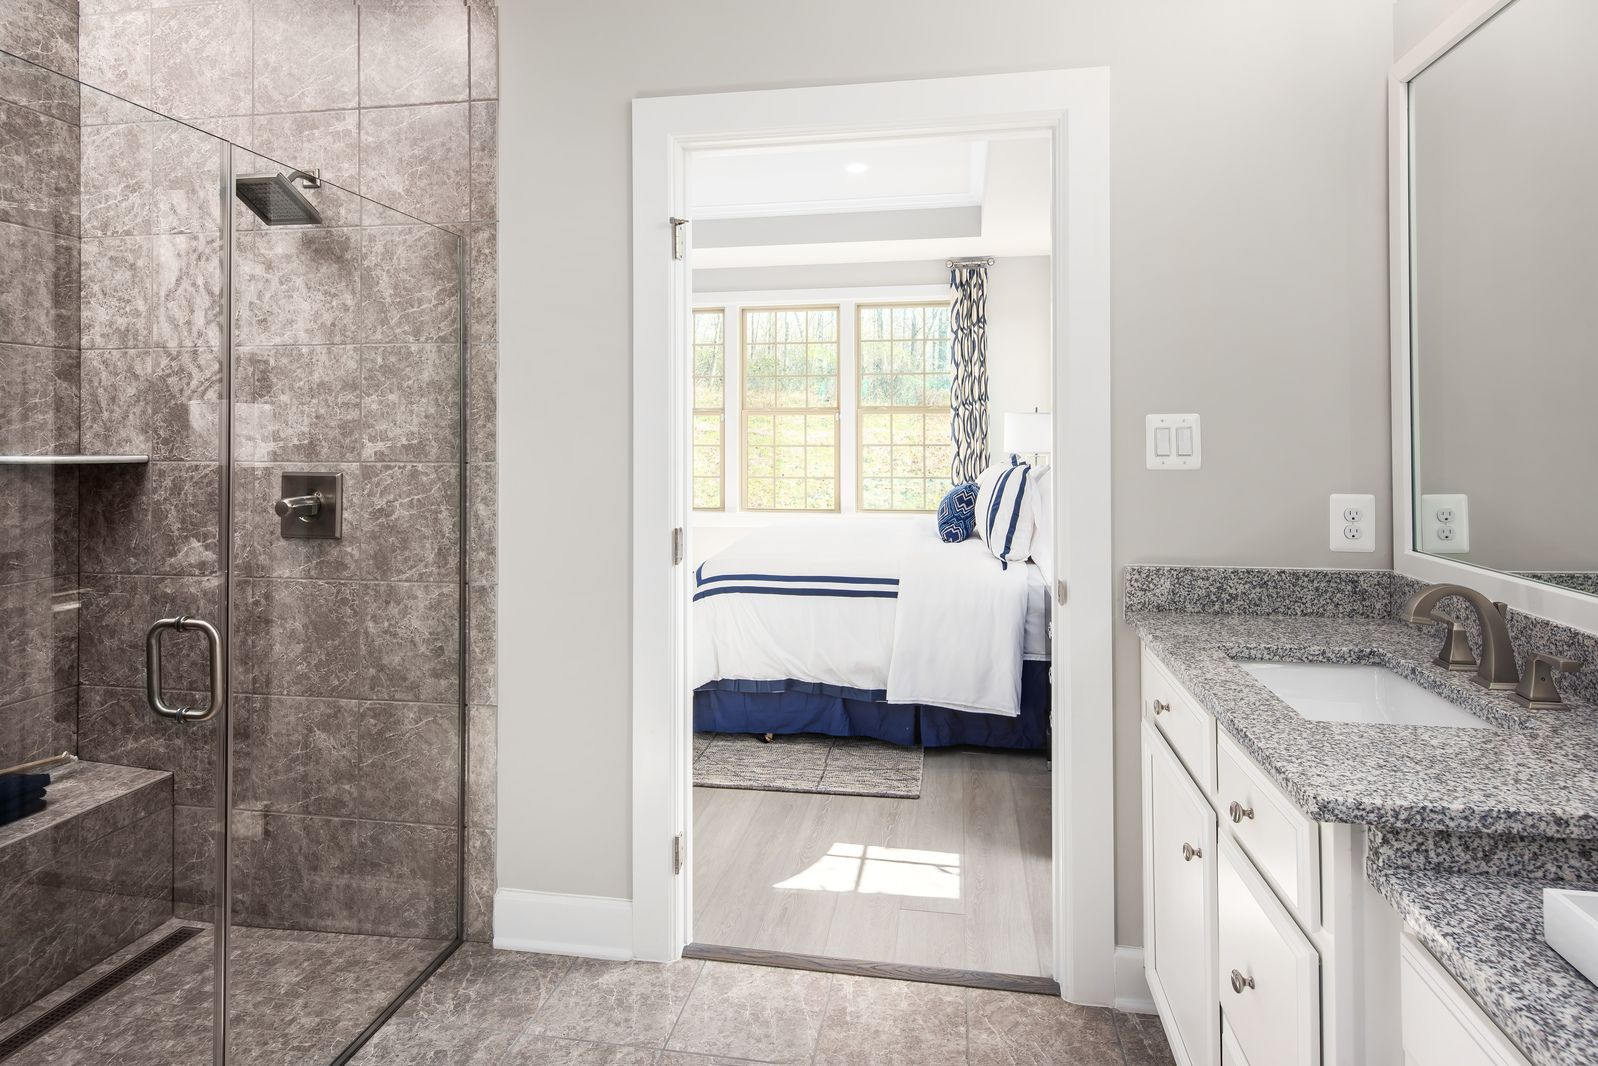 Bathroom featured in the Albright By NVHomes in Philadelphia, PA